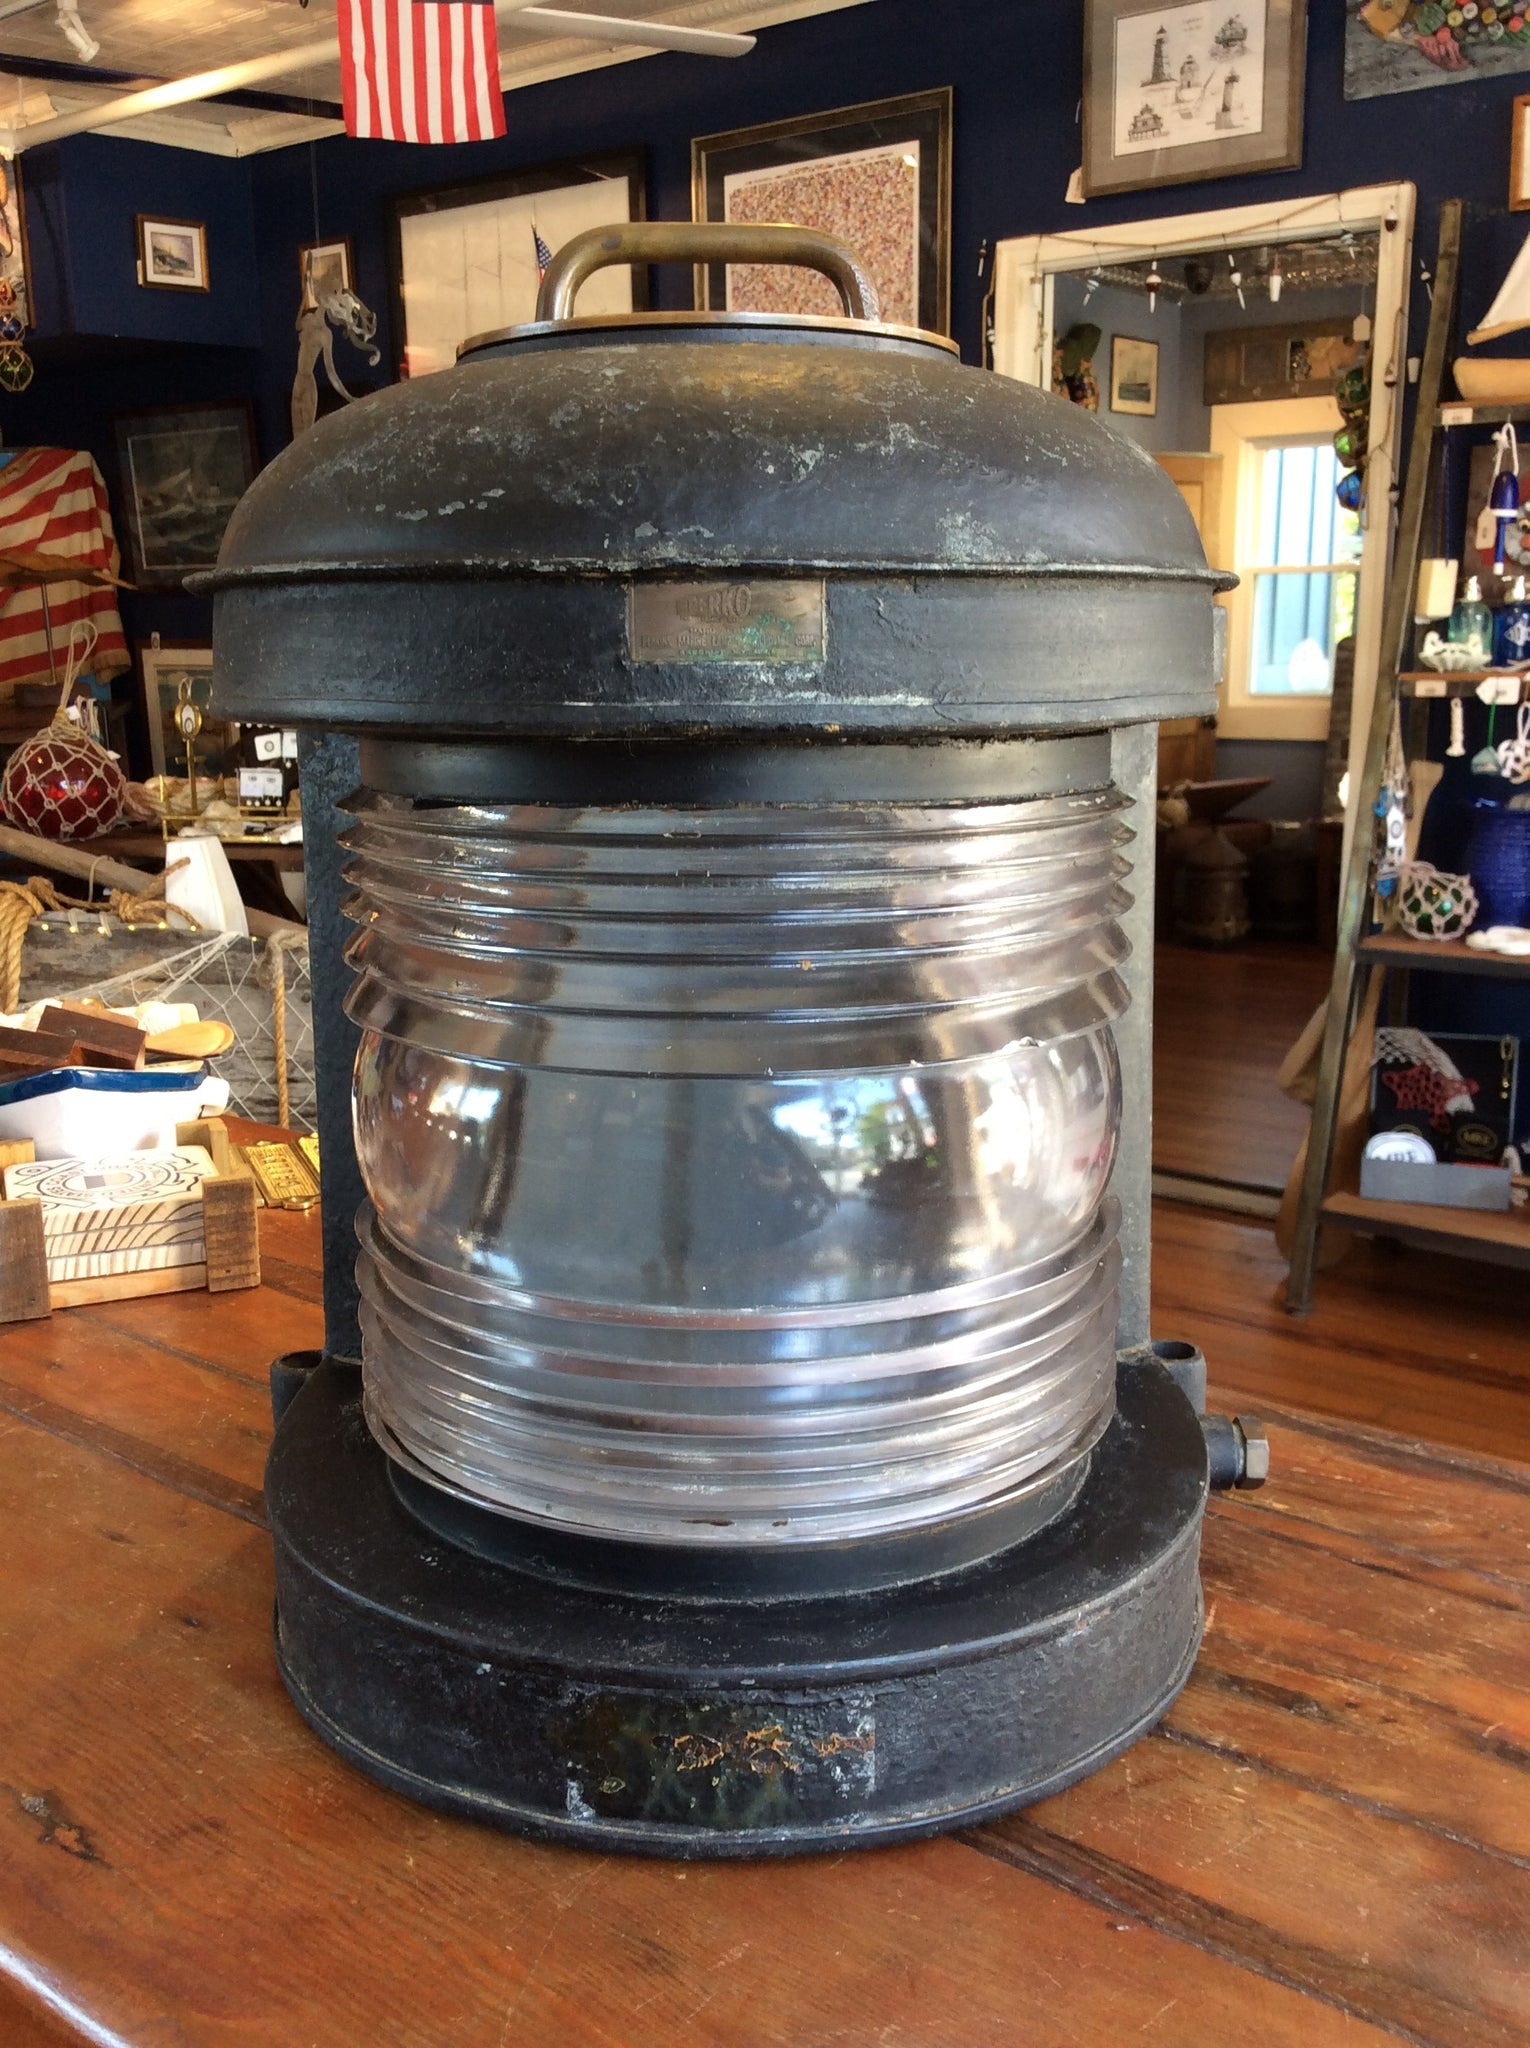 Lamp, Perko, 1943 Liberty Ship, SS Matthew Lyon - Annapolis Maritime Antiques